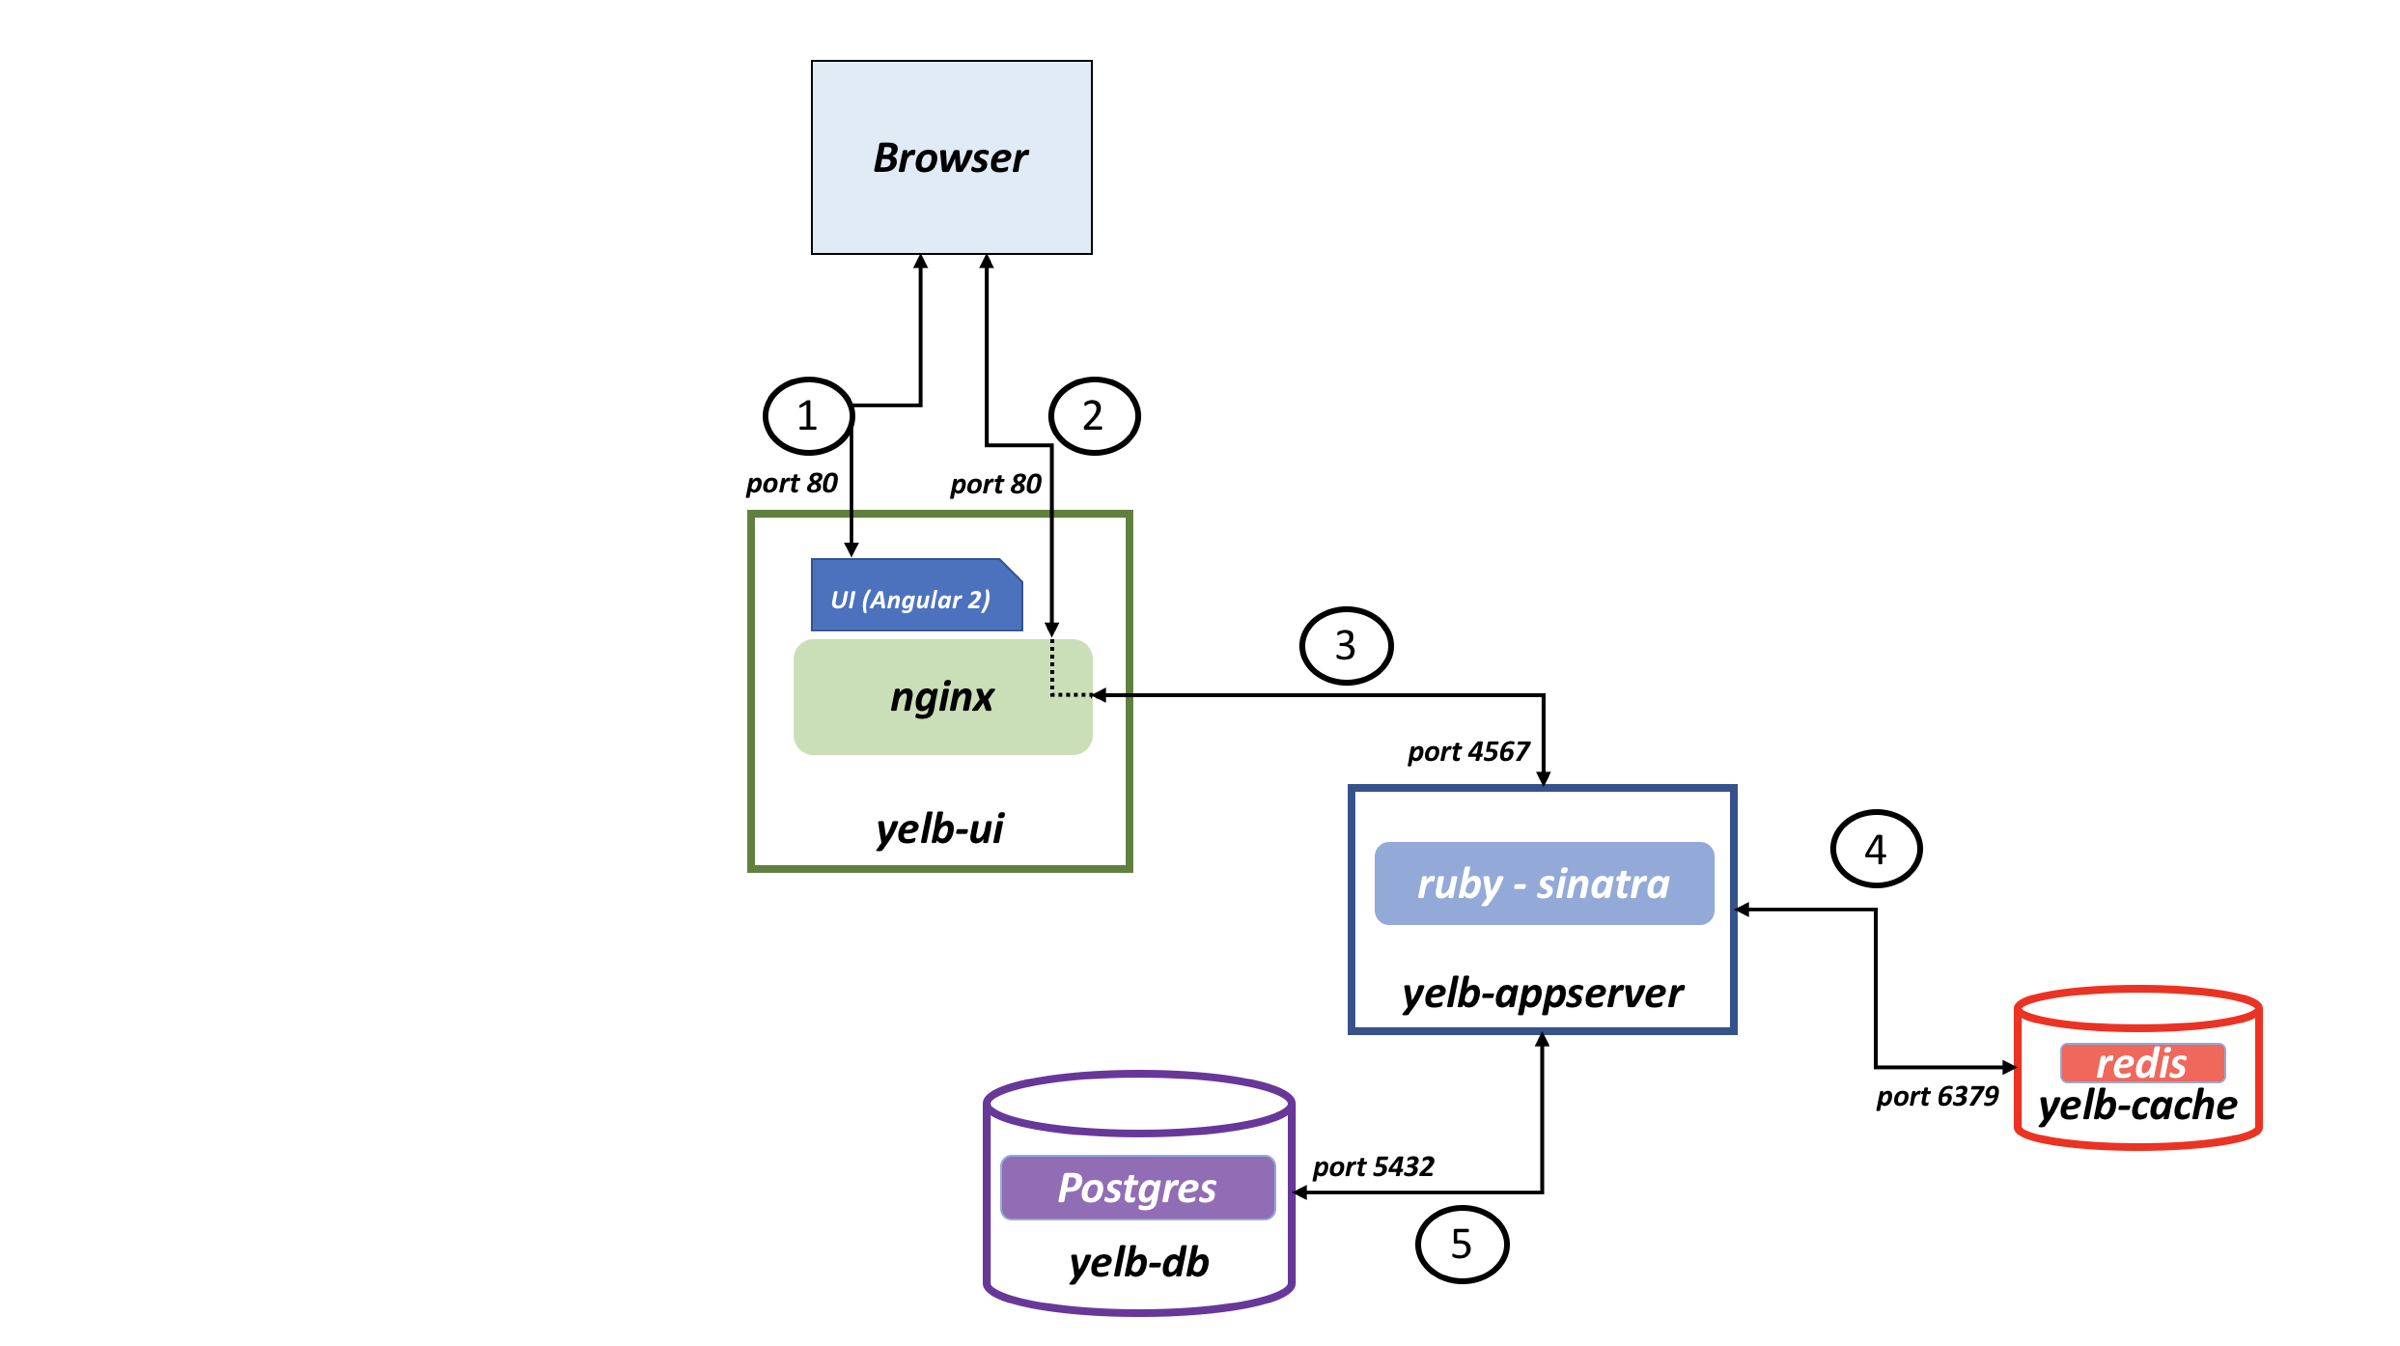 Architecture diagram of the yelb application